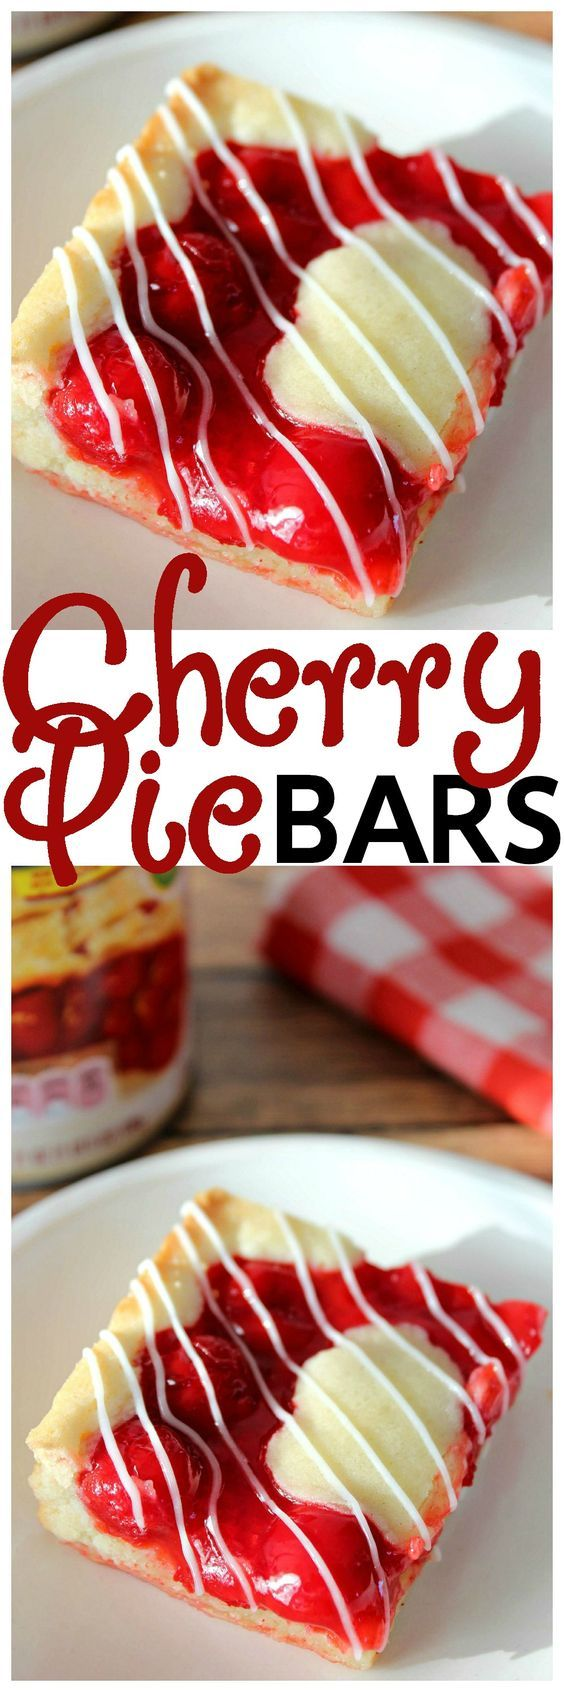 Buttery pie crust topped cherries and a sweet glaze.